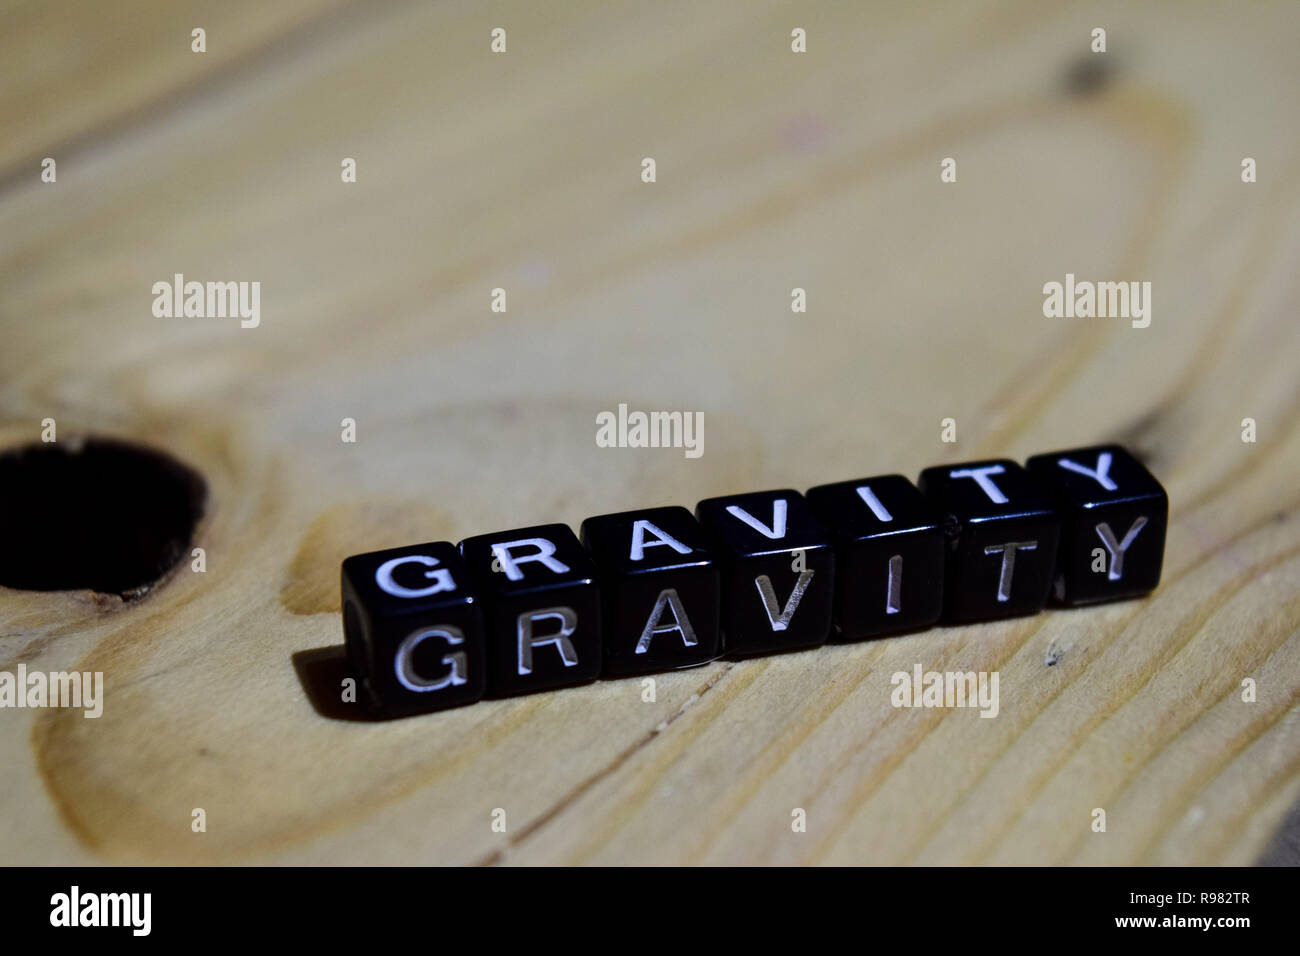 Gravity written on wooden blocks. Inspiration and motivation concepts. Cross processed image on Wooden Background - Stock Image